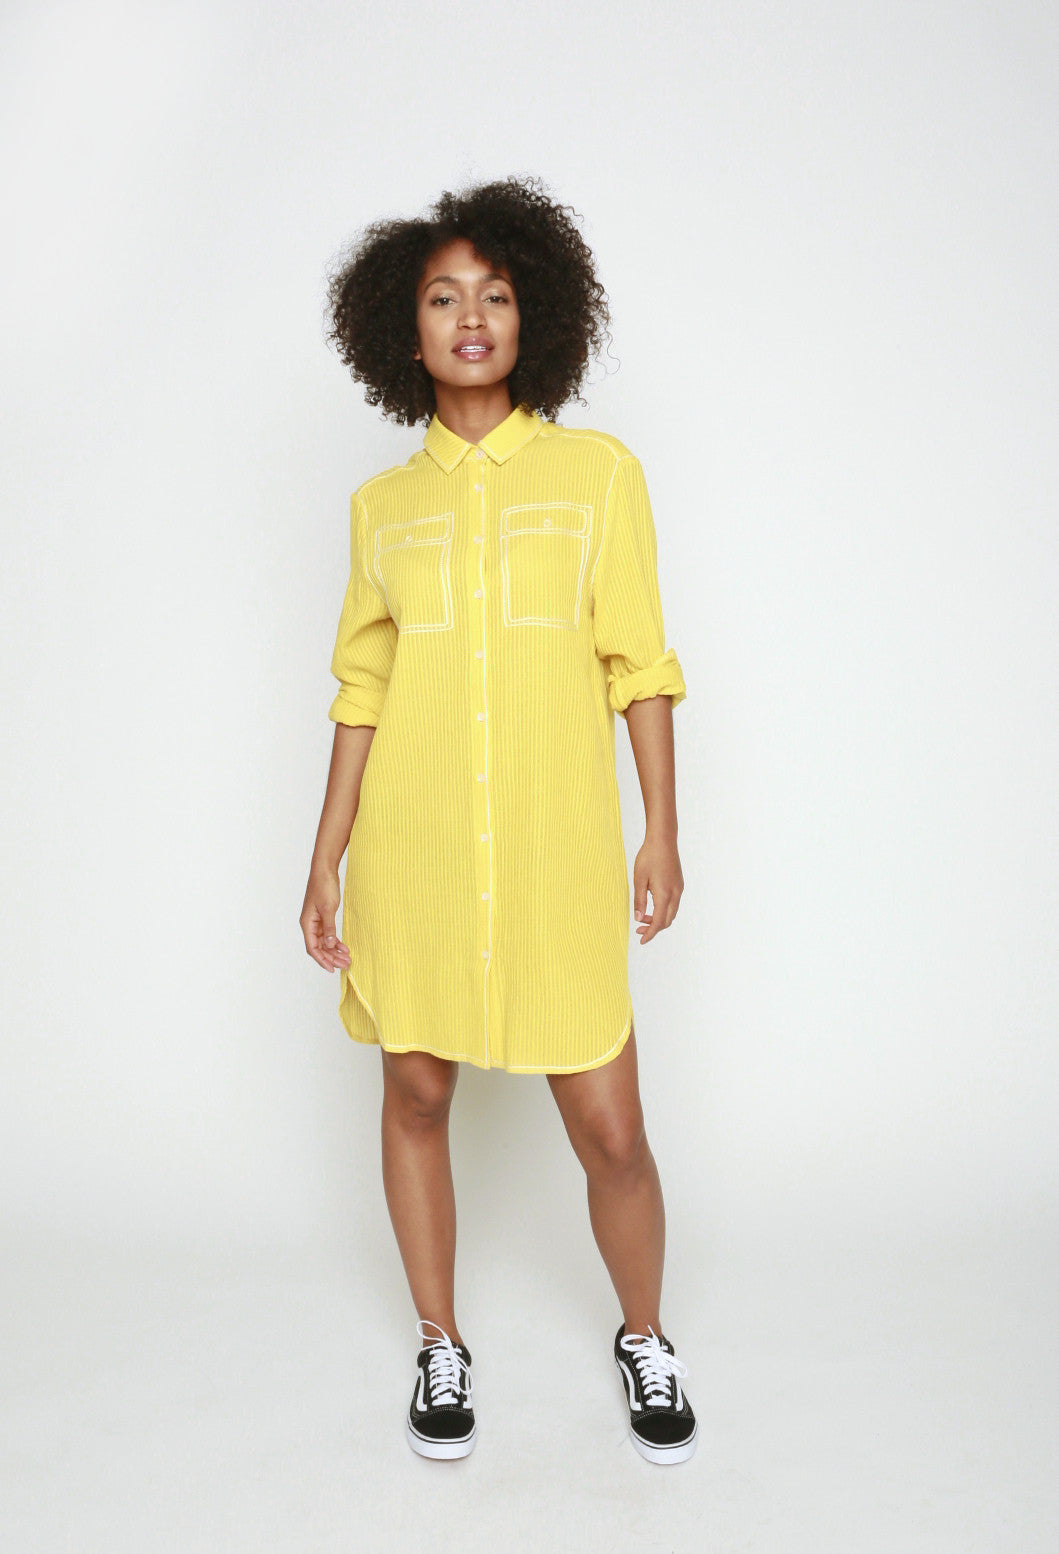 34°N 118°W Pockets Embroidered Shirt Dress